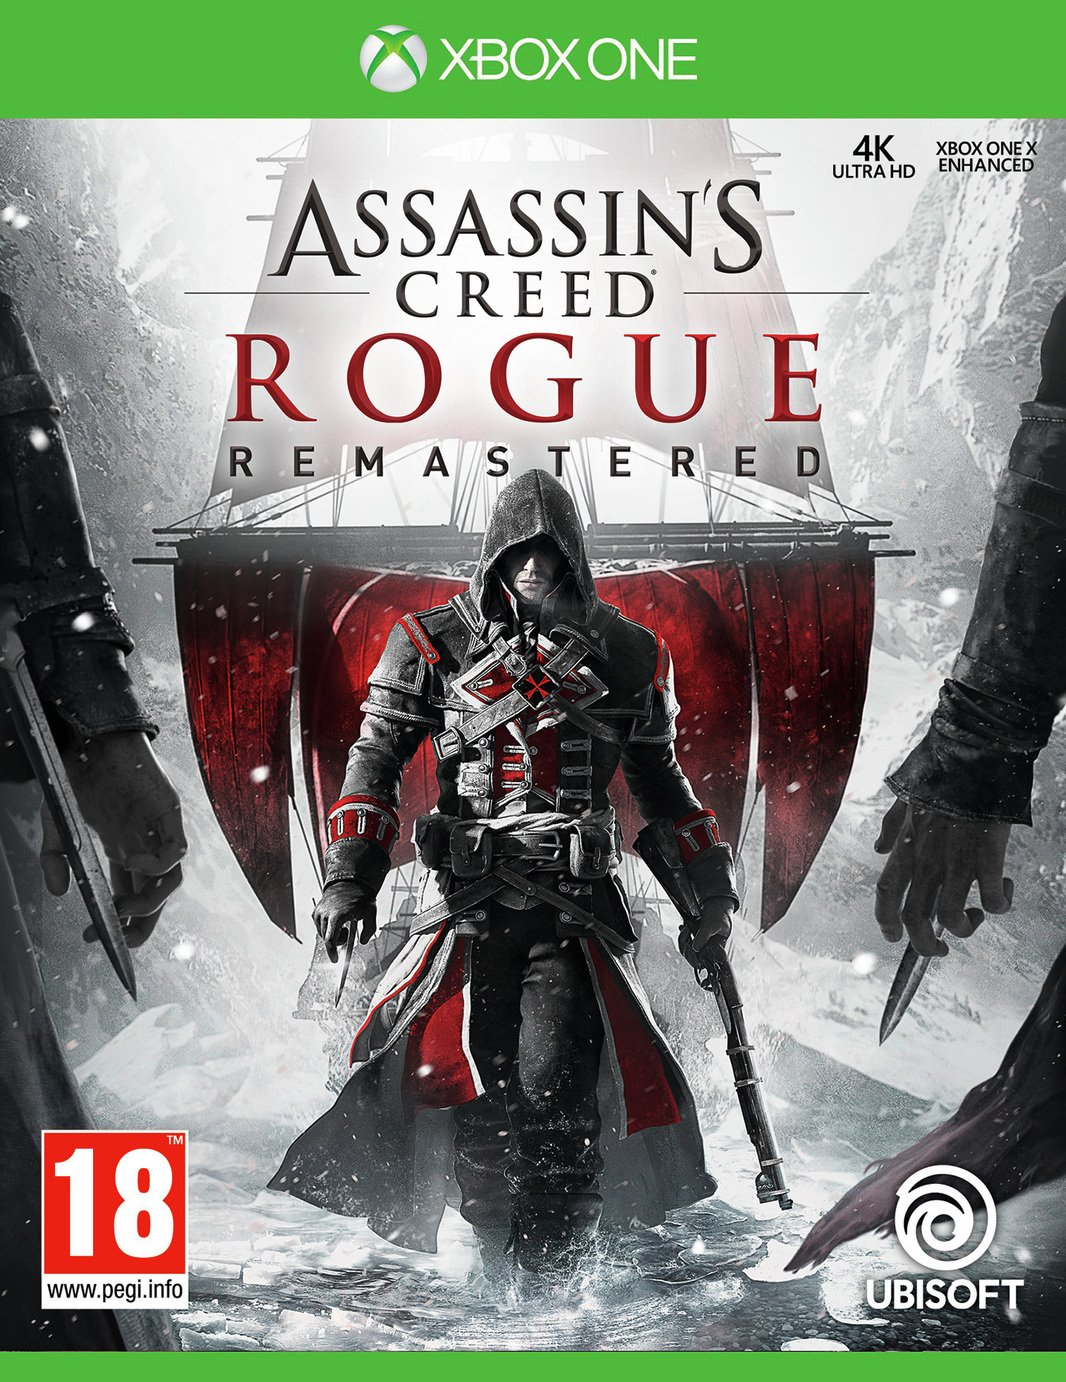 Assassin's Creed Rogue HD Xbox One Game from Xbox One X Enhanced